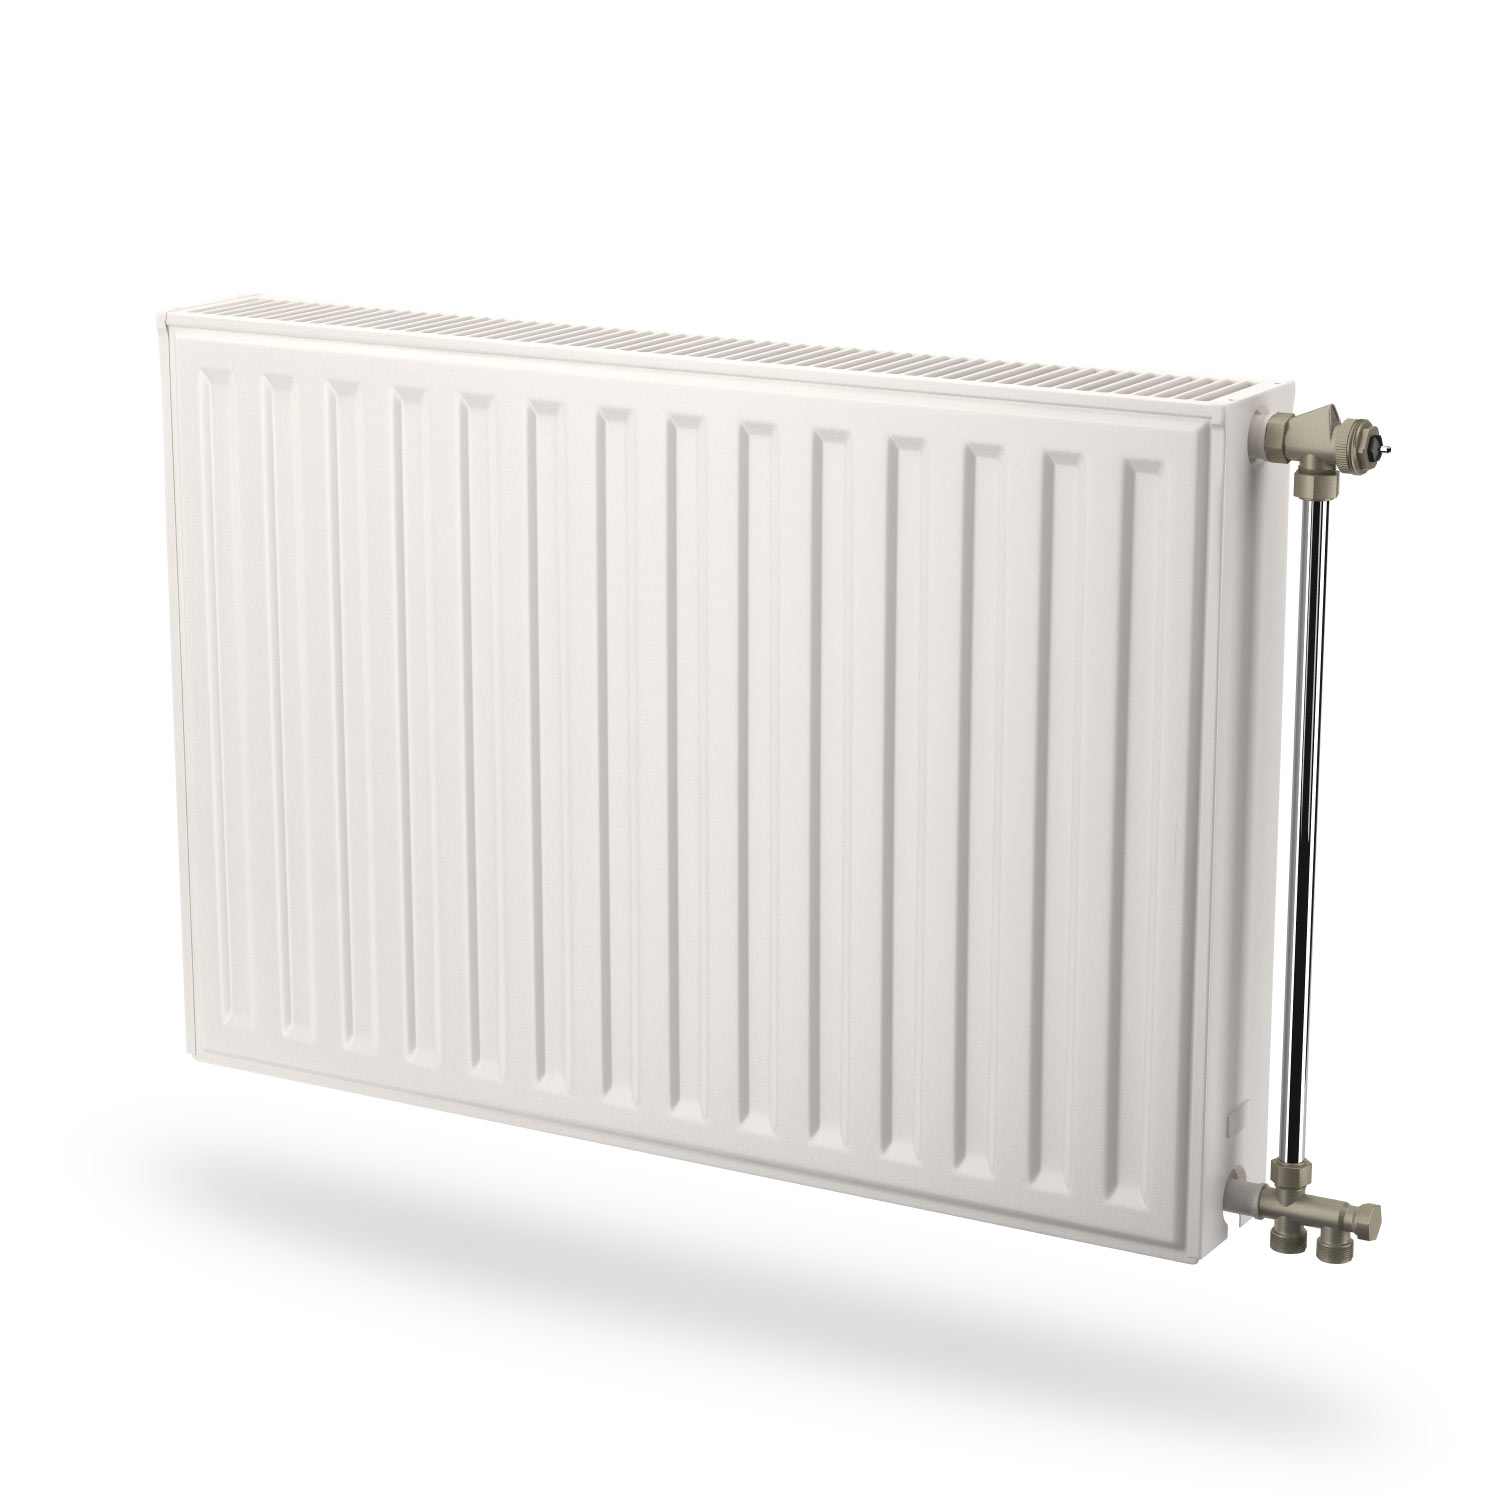 Radiateur traditionnel compact type11 H300 Radson